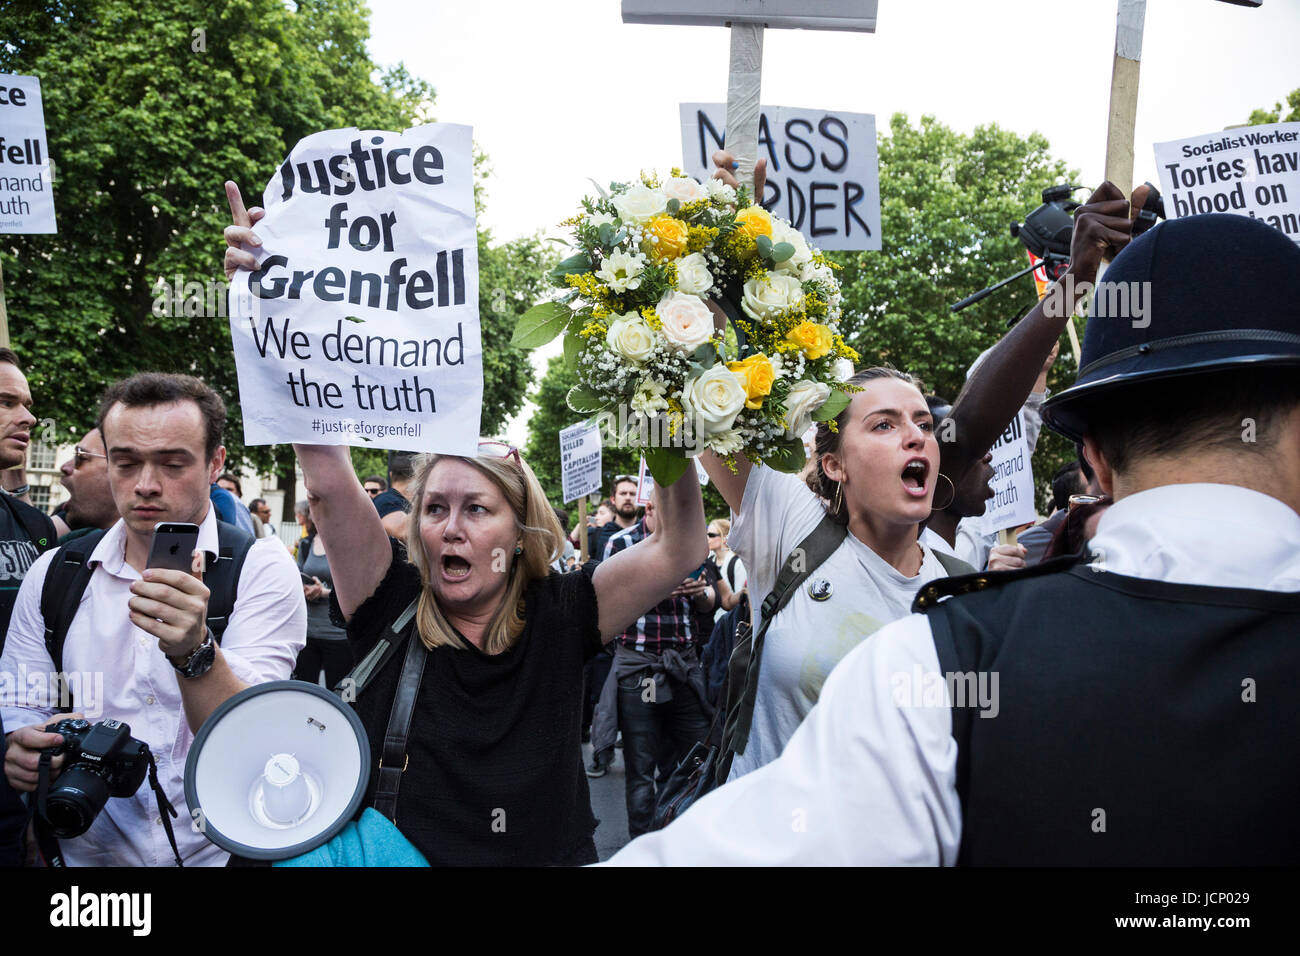 London, UK. 16th June, 2017. Justice for Grenfell Protest outside Downing Street. Protesters call for a full investivation - Stock Image